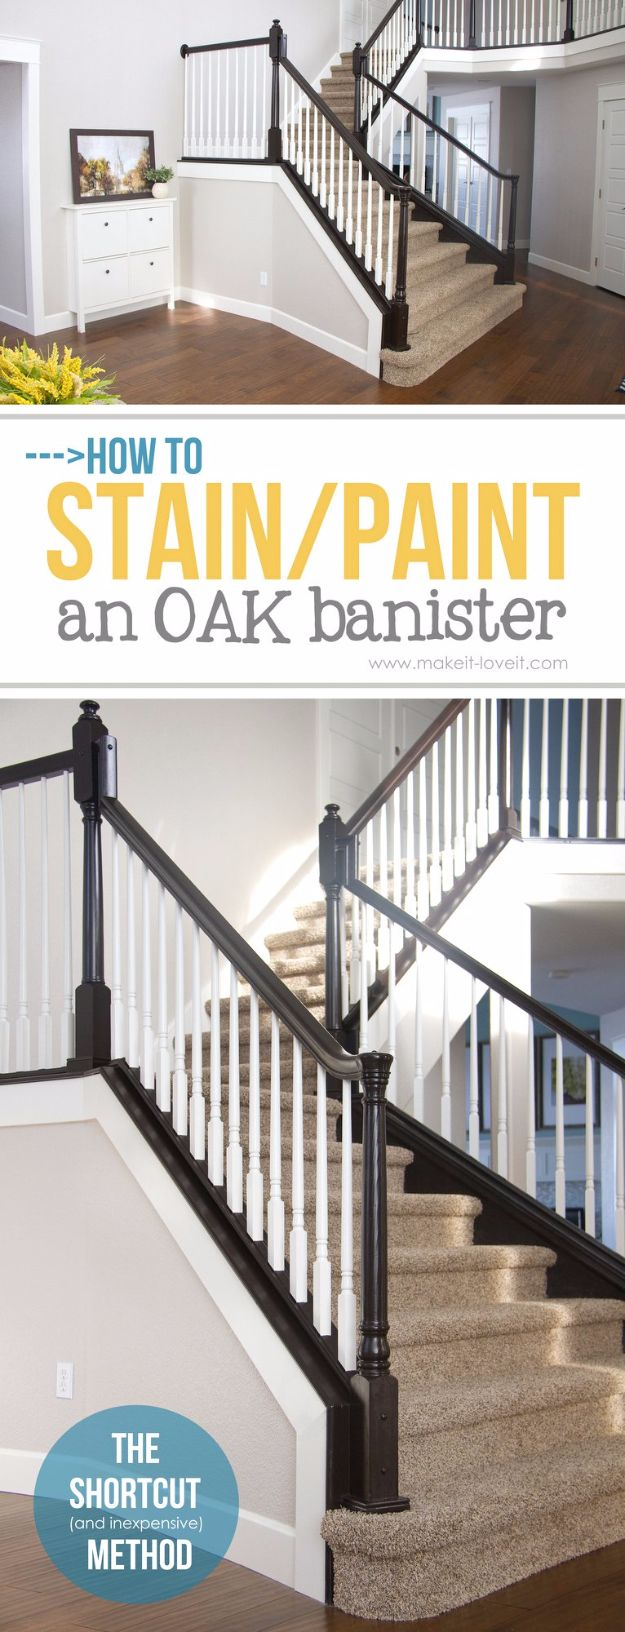 DIY Home Improvement Projects On A Budget - Paint an Oak Banister - Cool Home Improvement Hacks, Easy and Cheap Do It Yourself Tutorials for Updating and Renovating Your House - Home Decor Tips and Tricks, Remodeling and Decorating Hacks - DIY Projects and Crafts by DIY JOY http://diyjoy.com/diy-home-improvement-ideas-budget